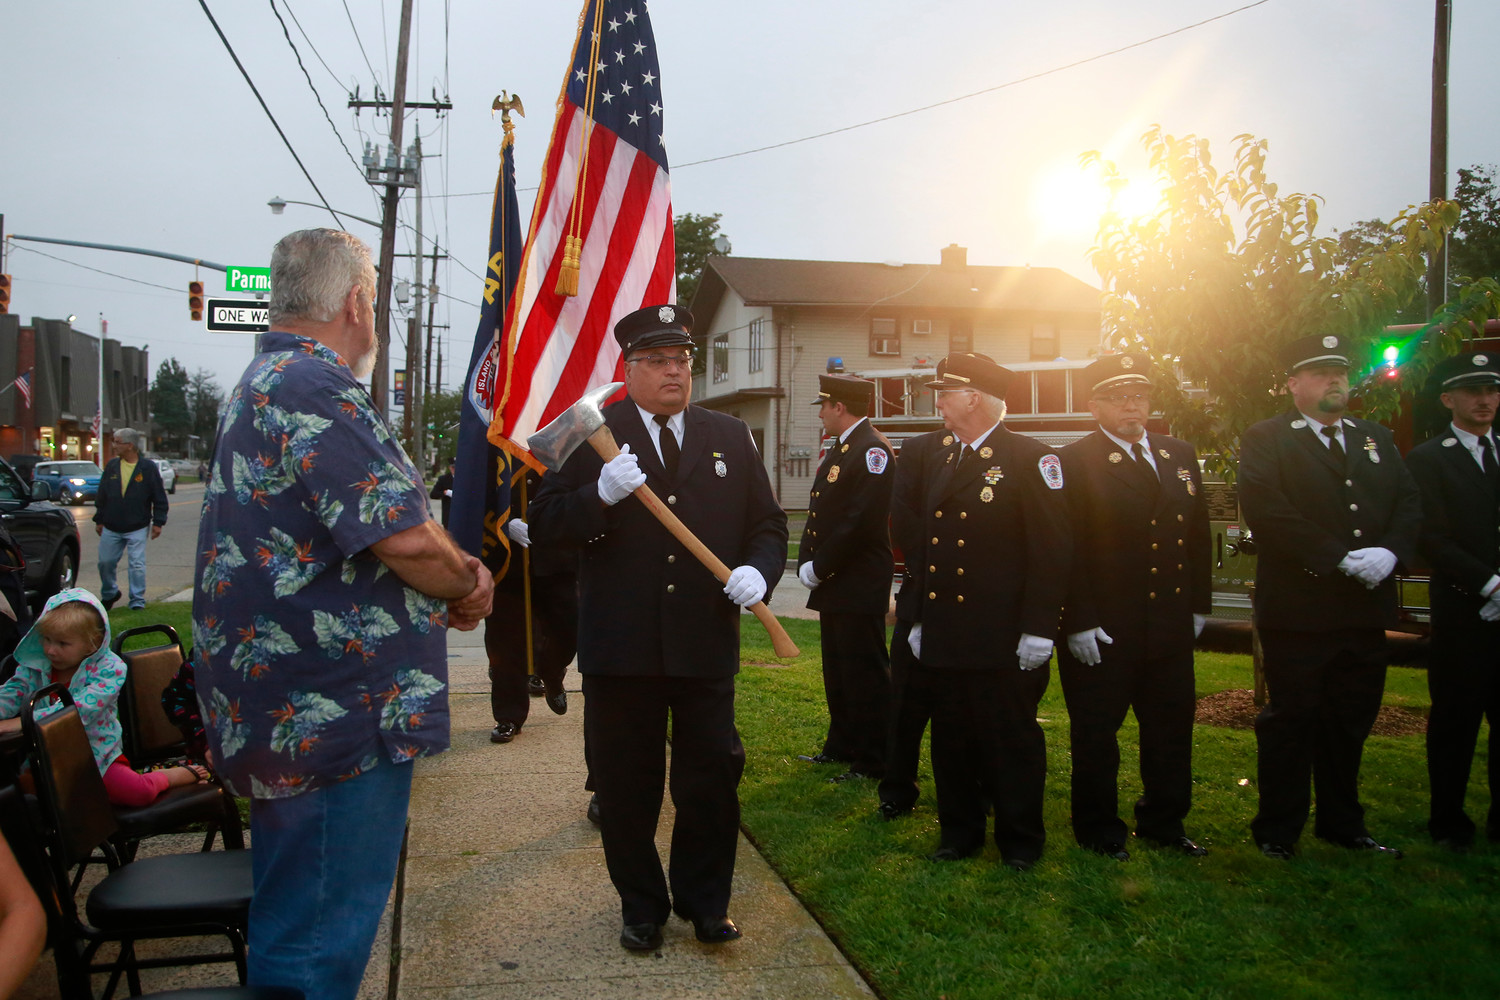 The Island Park Fire Department presented the colors.